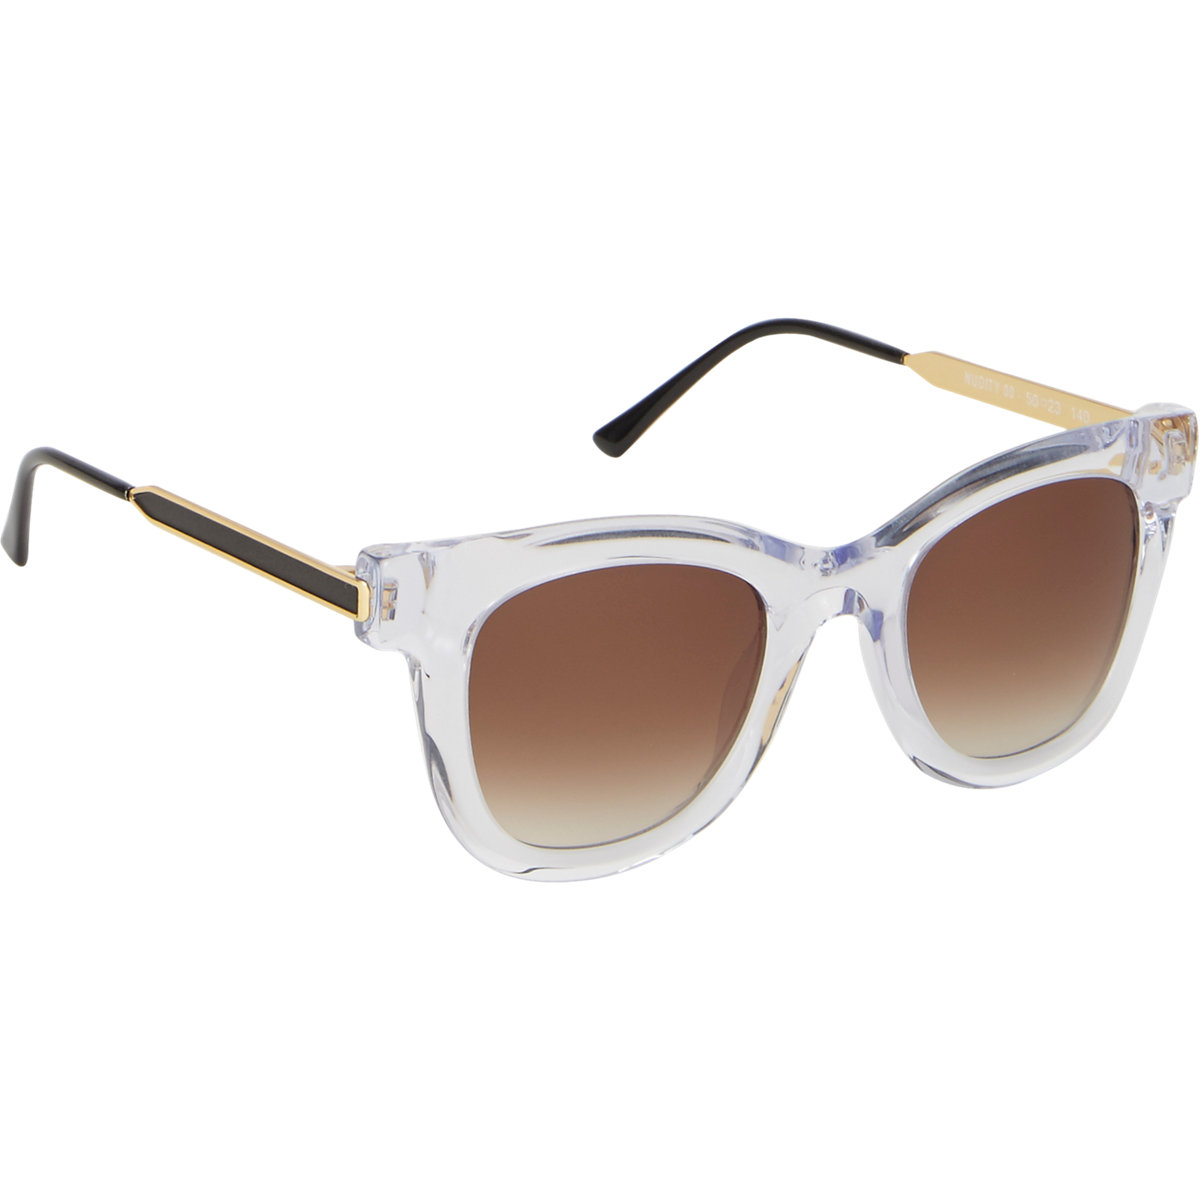 Thierry lasry nudity Sunglasses in Brown